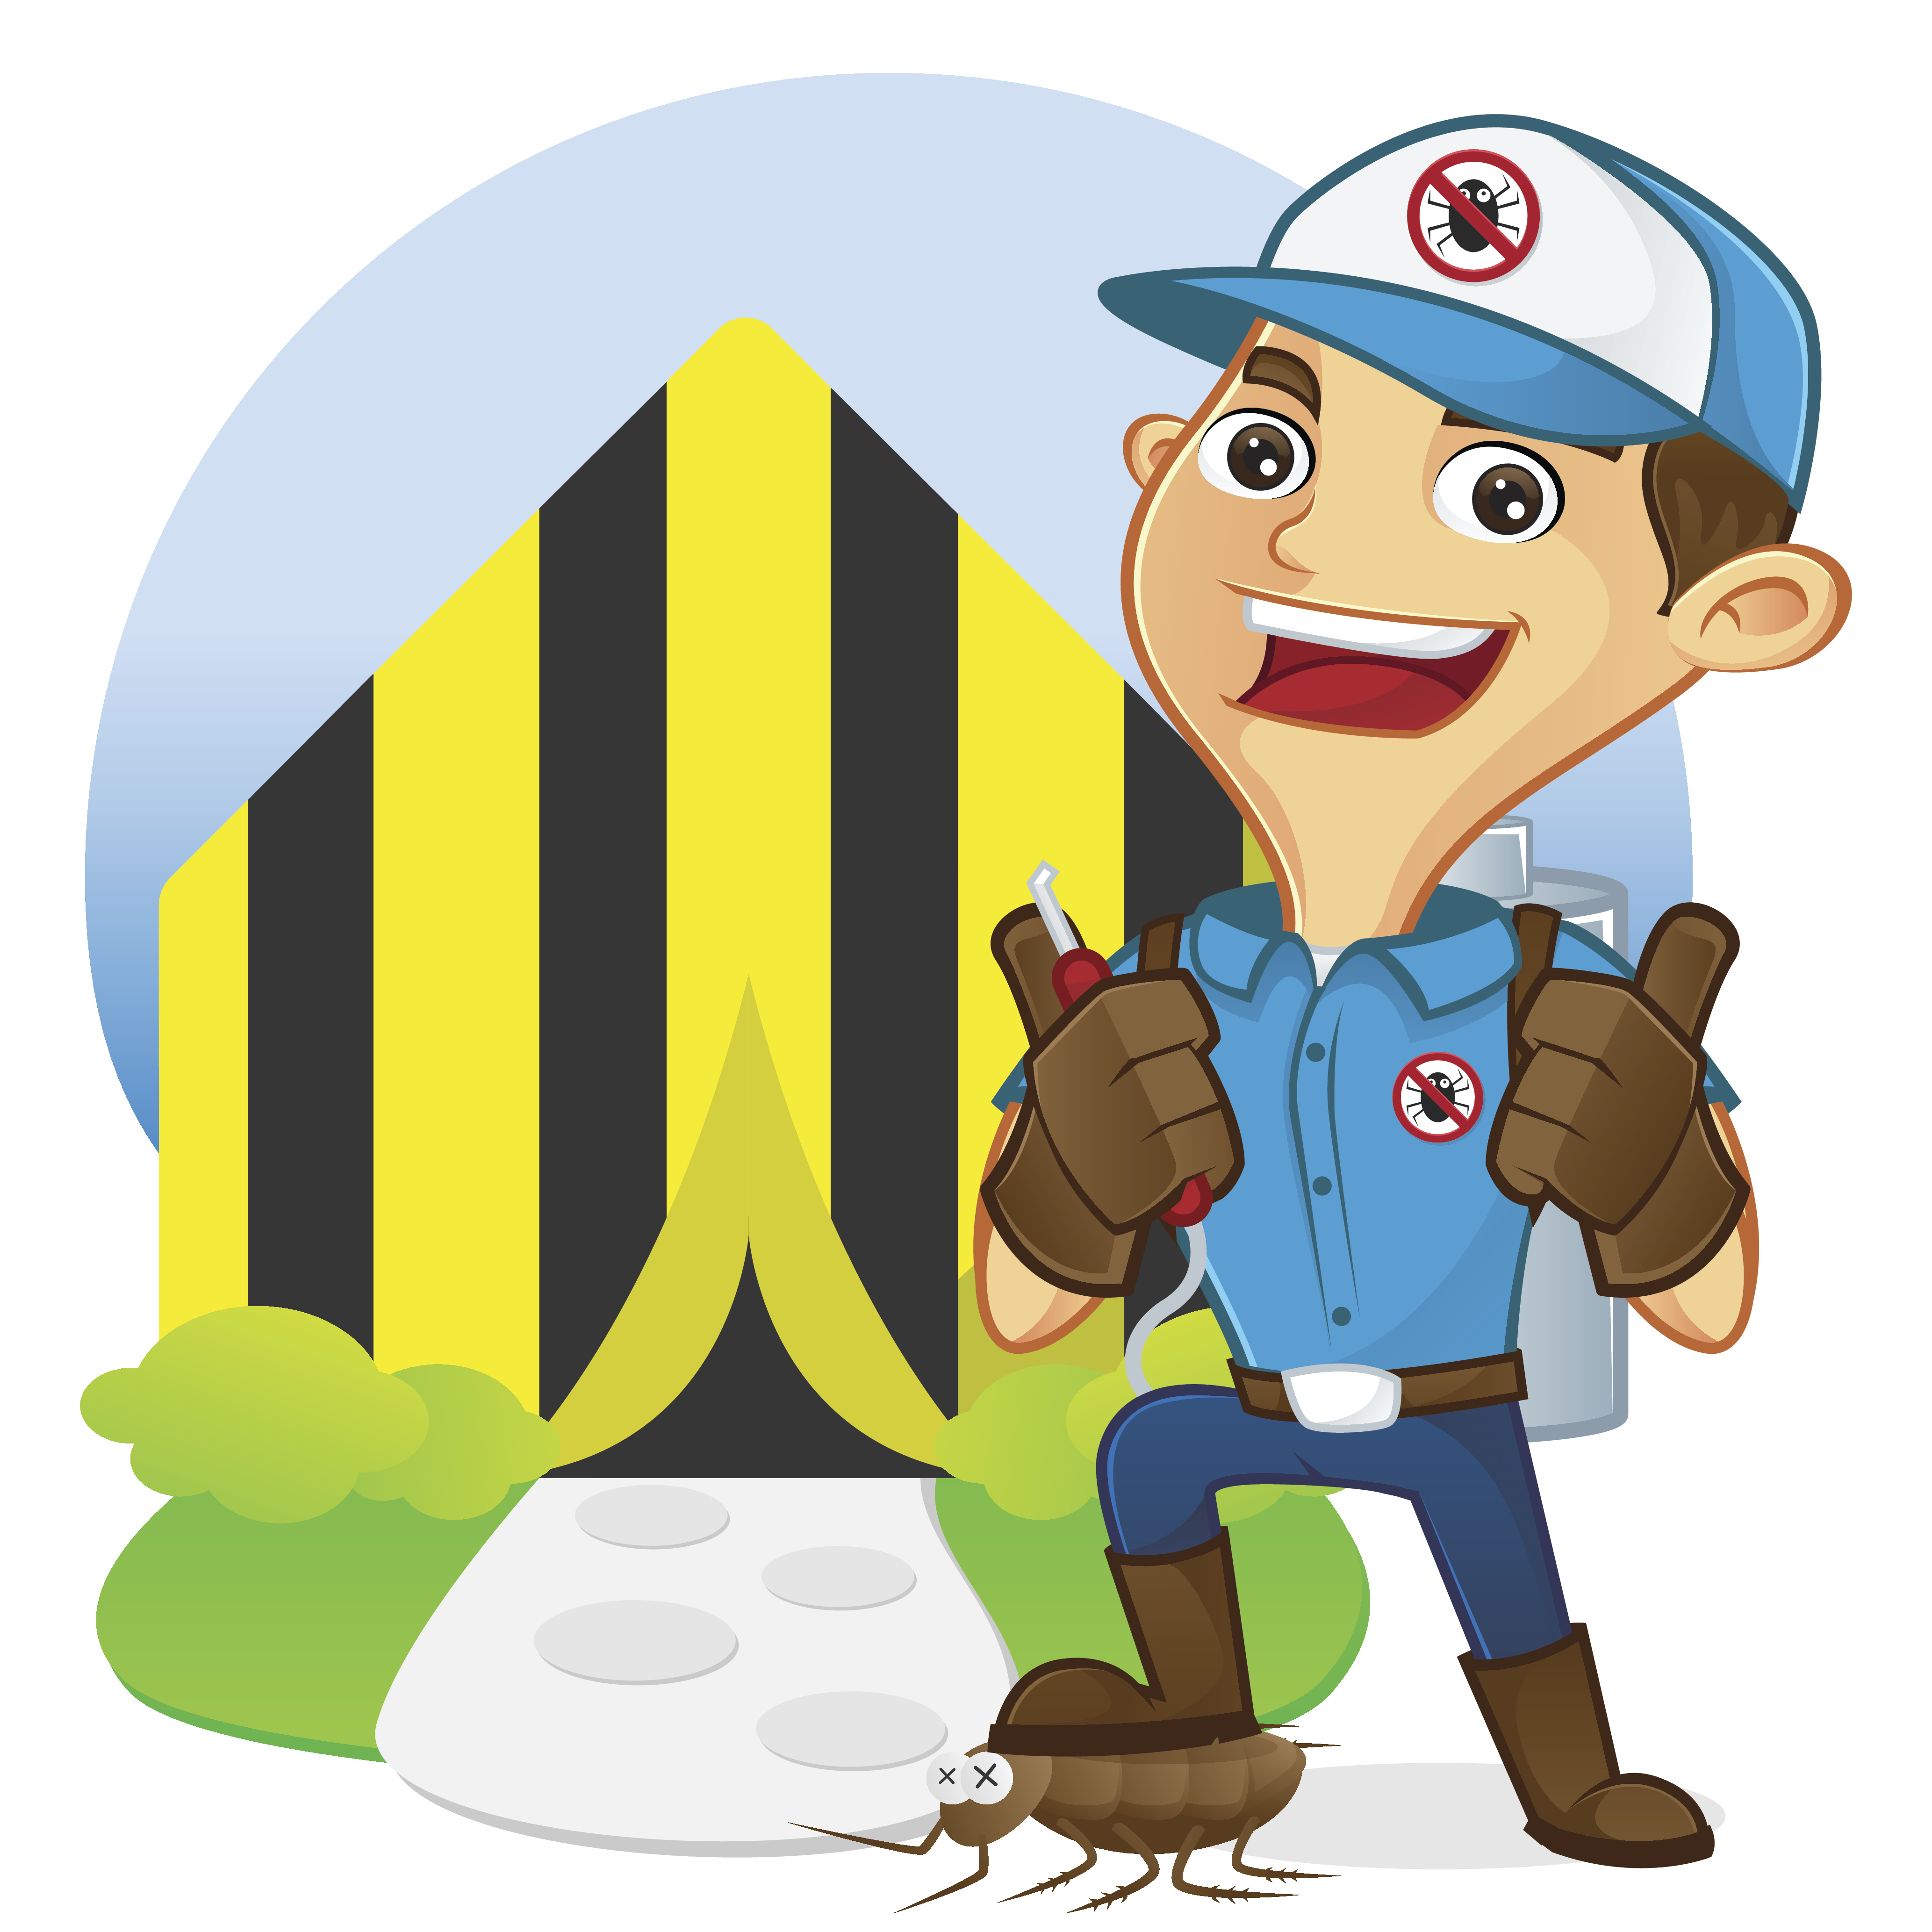 Exterminator in front of tenting home isolated in white background